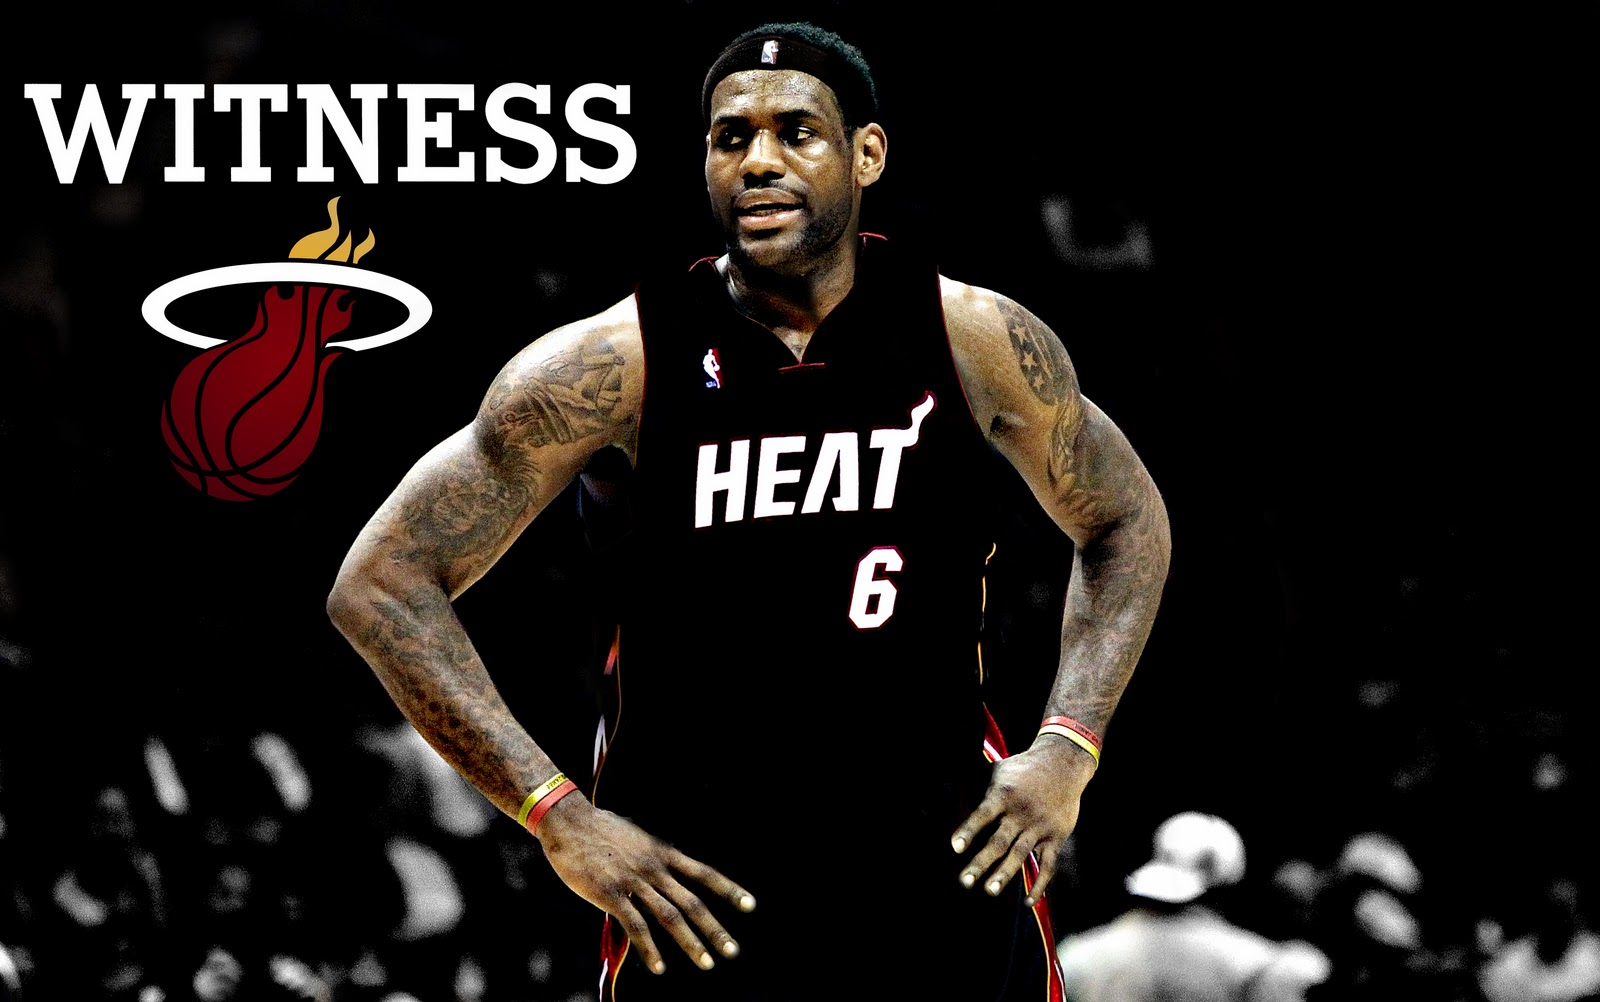 LeBron James Heat